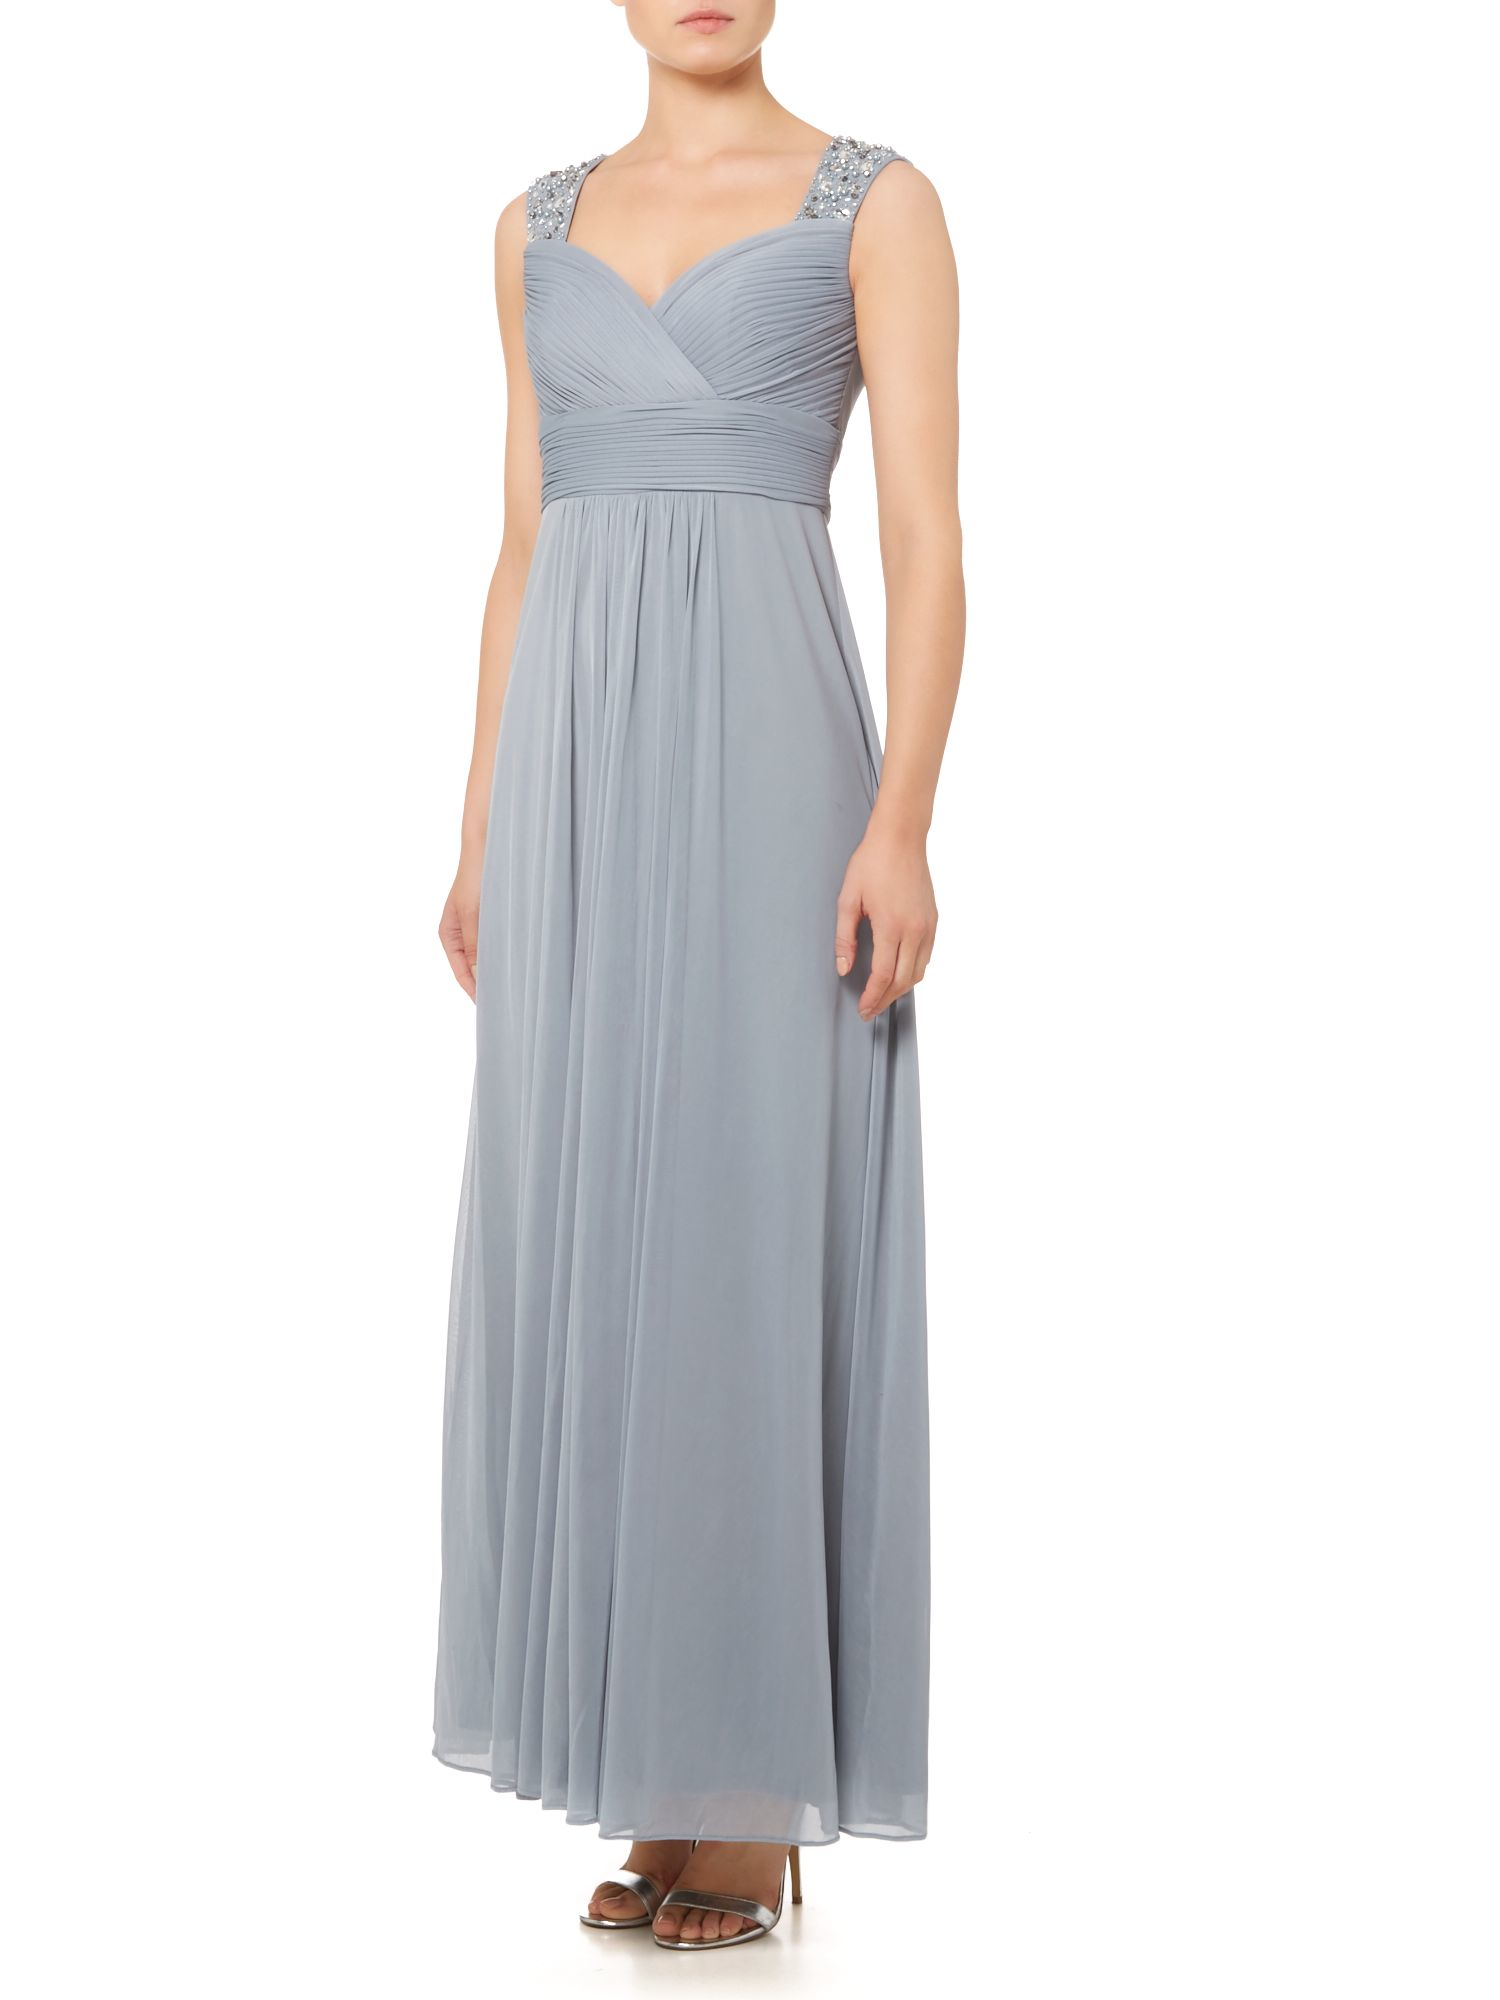 eliza j beaded dress with front bodice rouching in